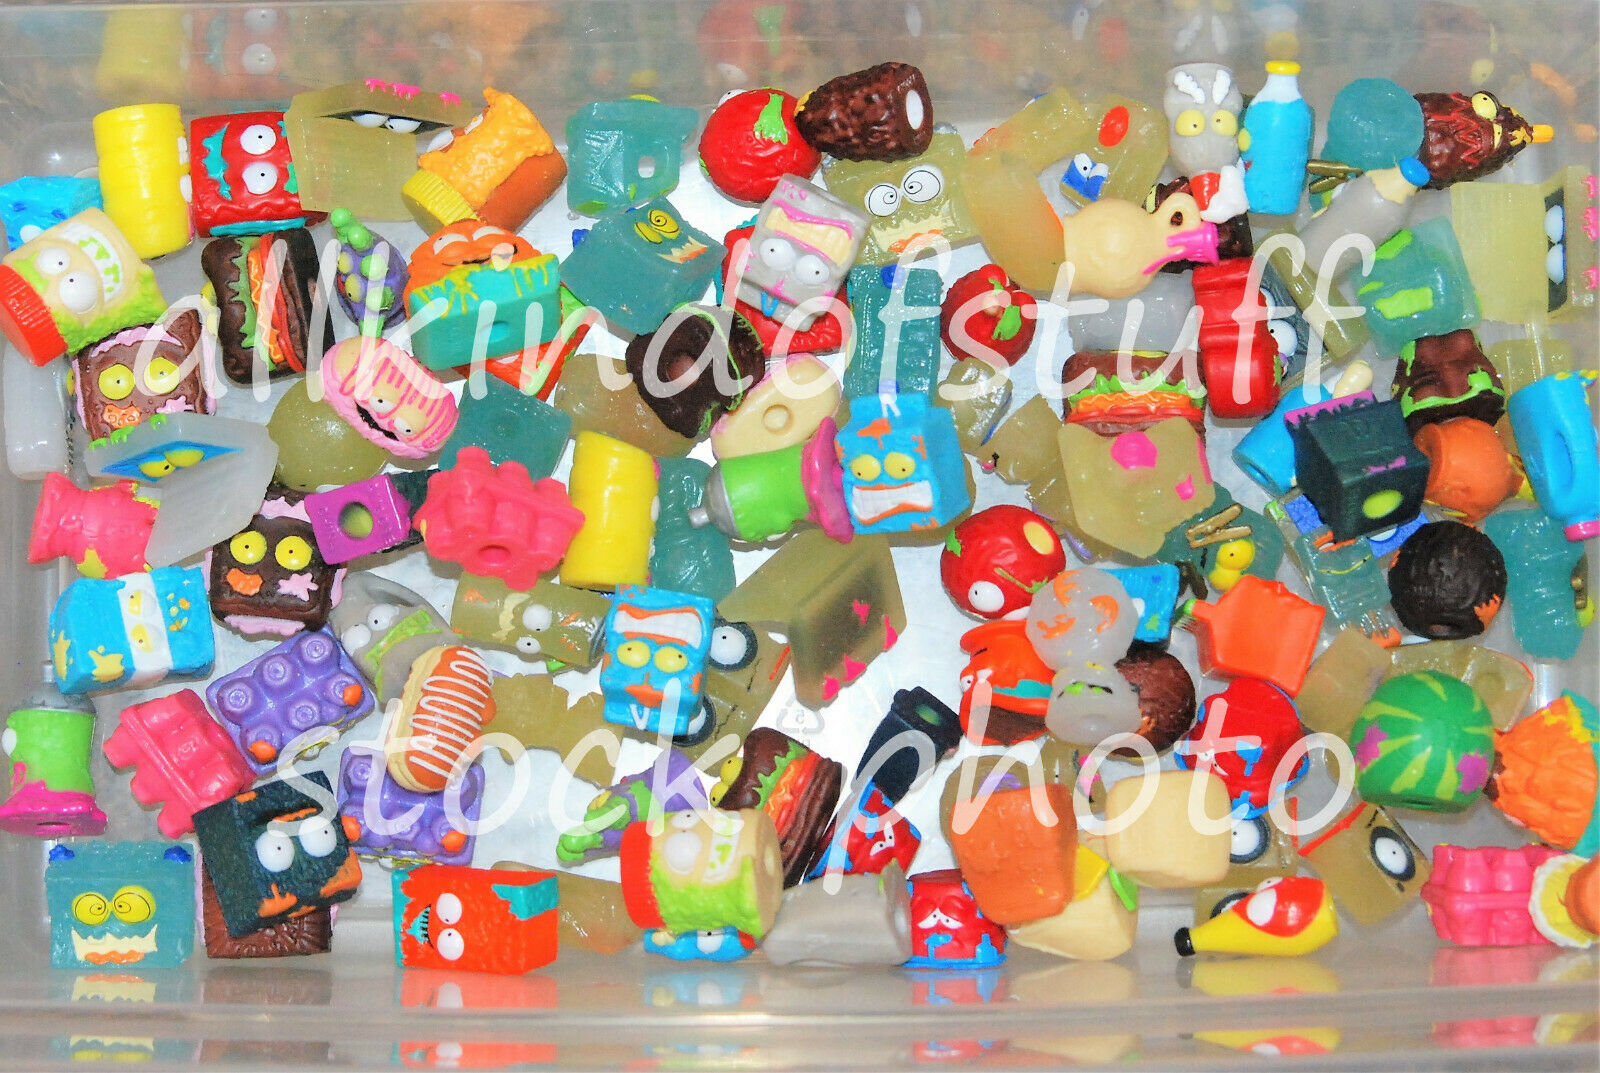 THE GROSSERY GANG SERIES 2 TRASHED TABLET 2-142 GLOWING FINISH